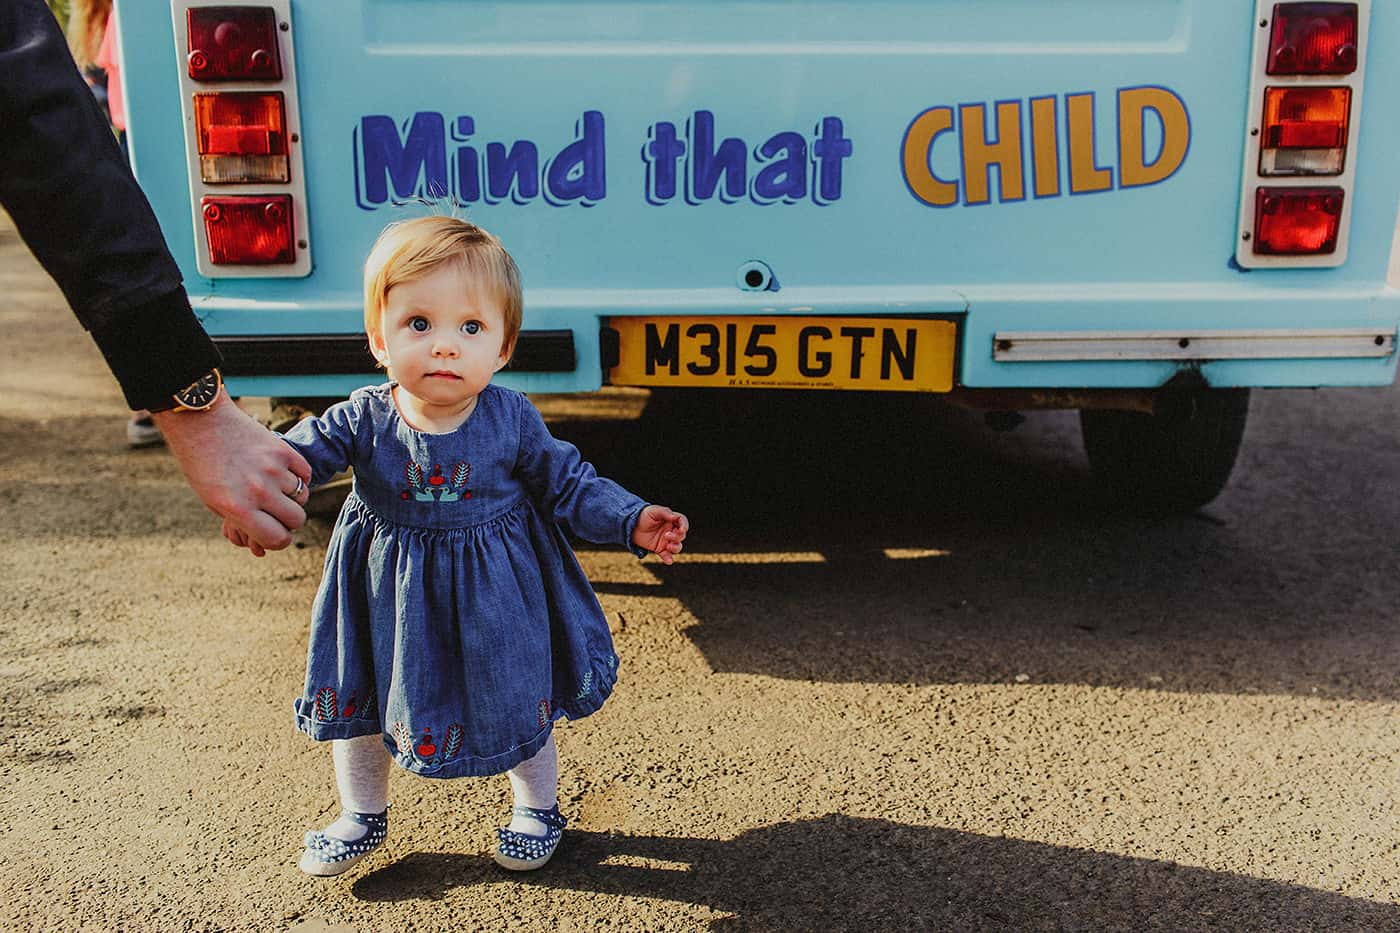 Toddler standing behind ice cream truck with Mind That Child slogan